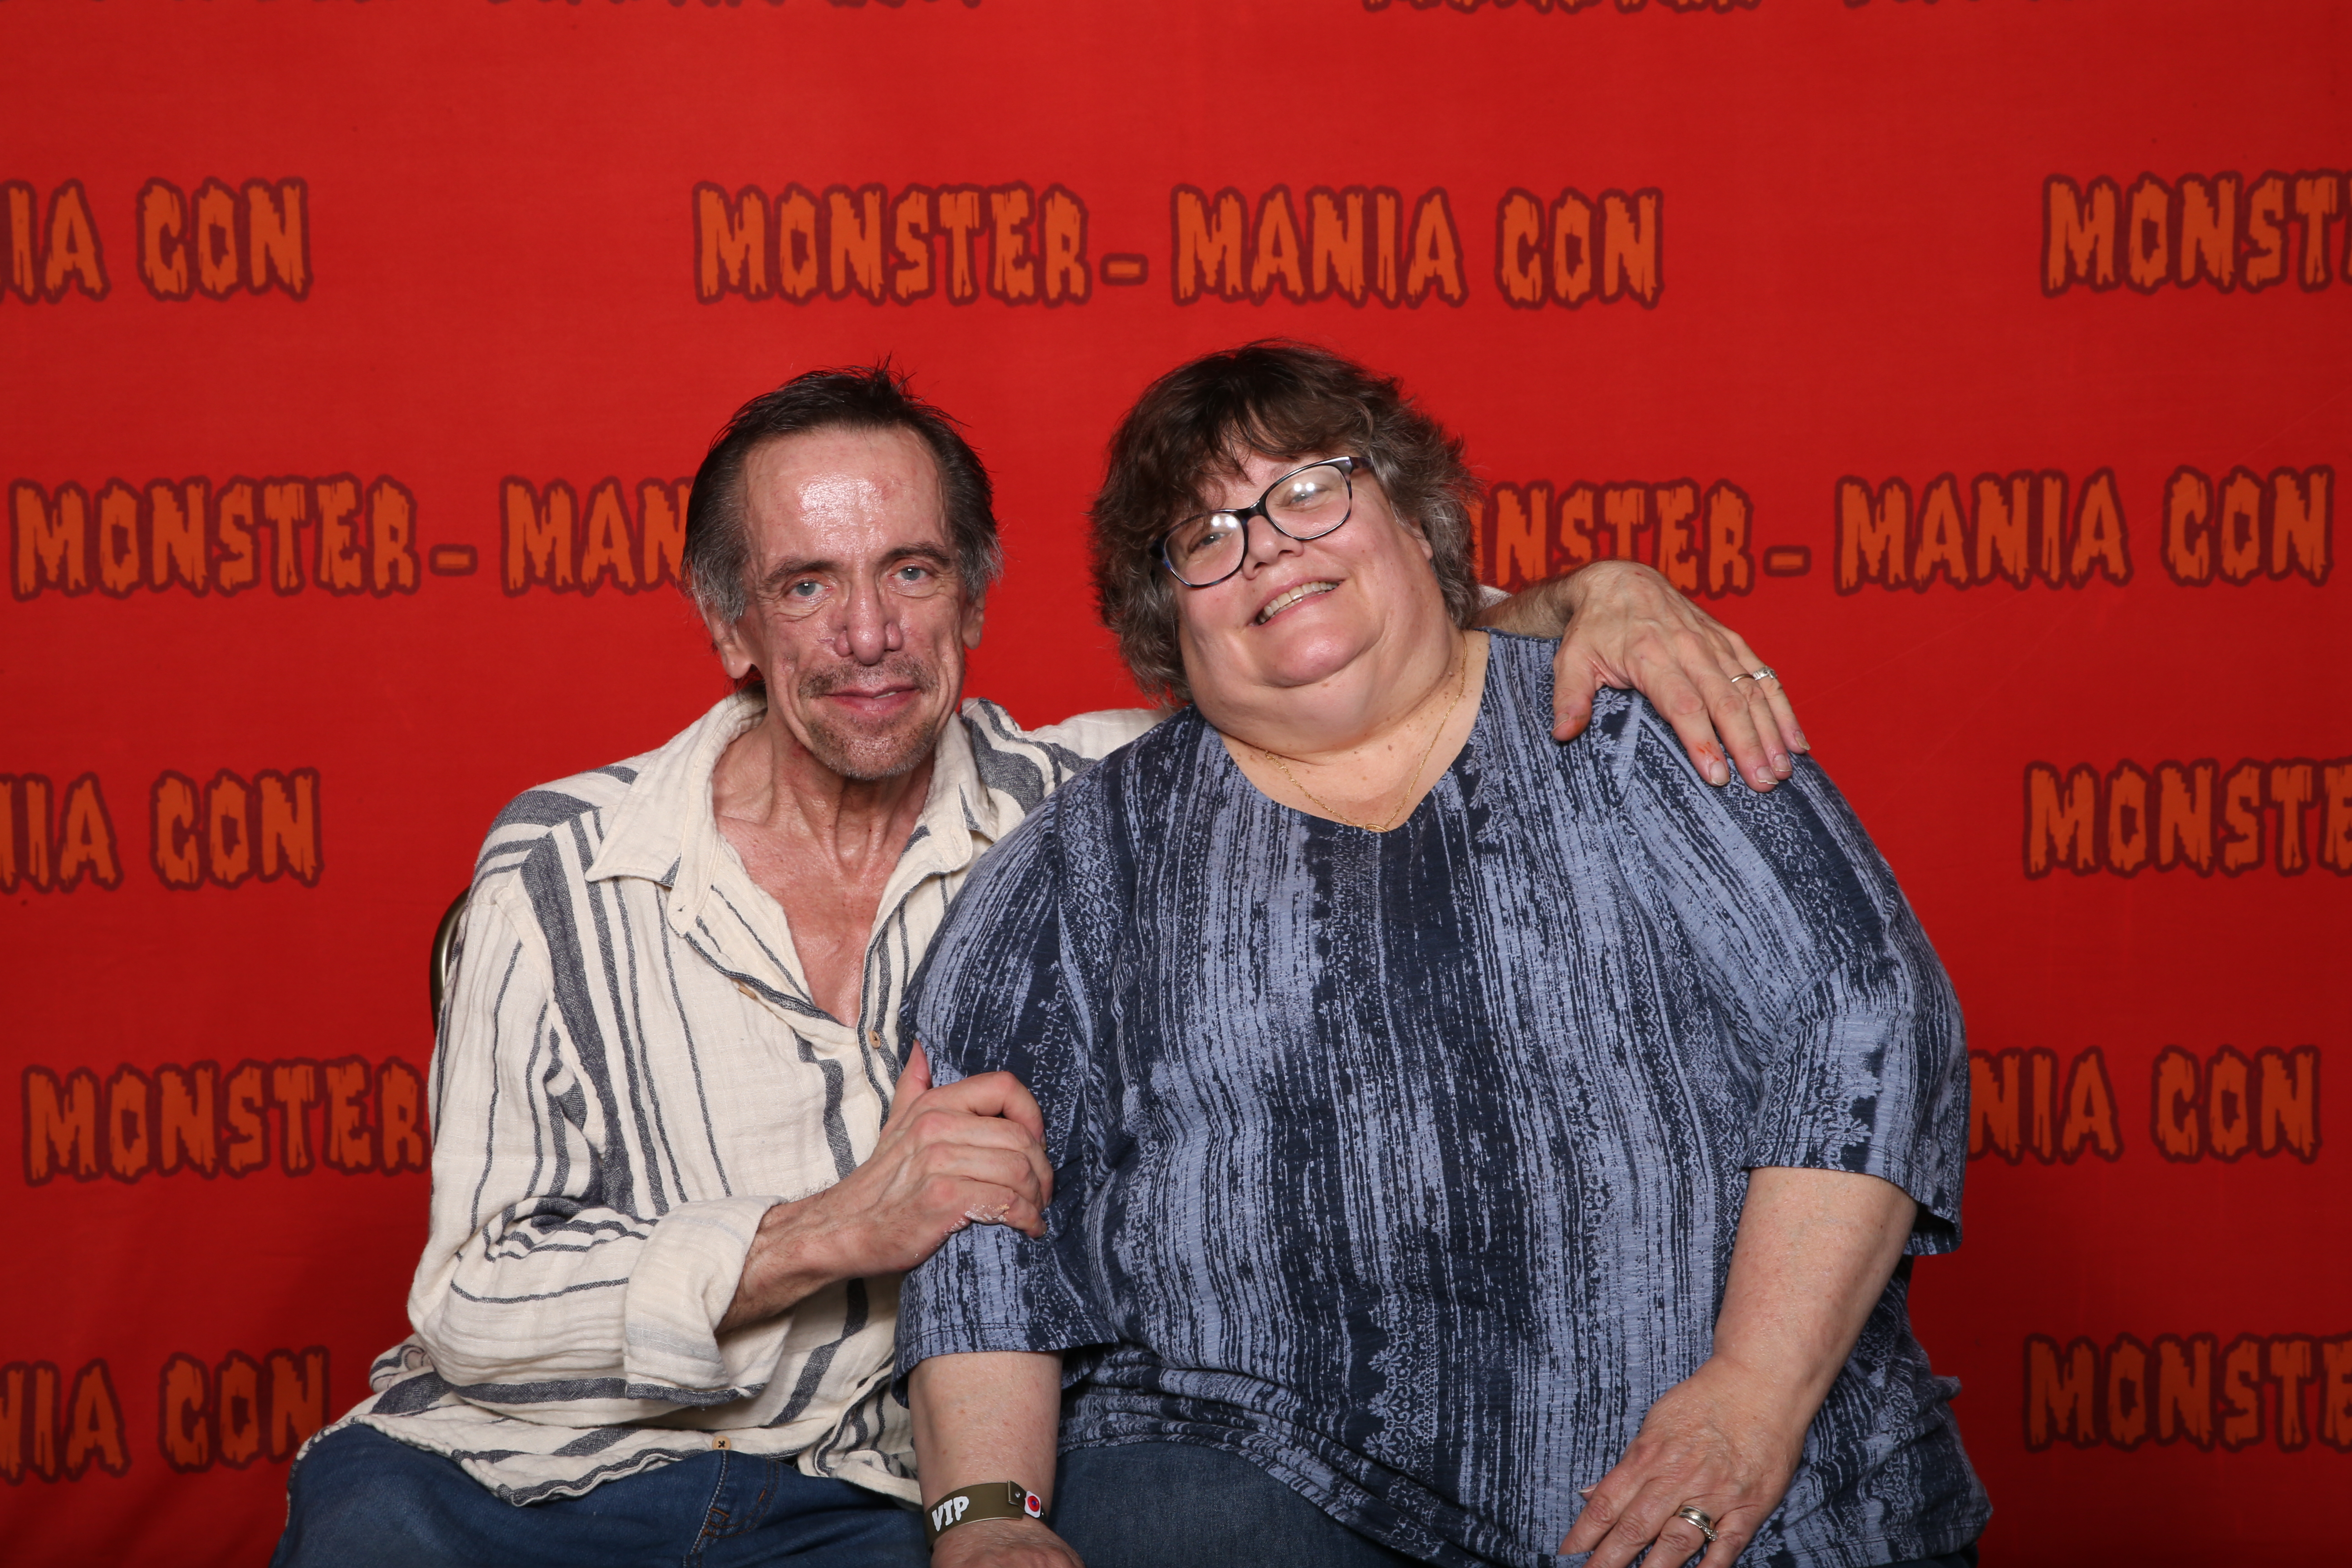 Clive Barker (Horror Writer) with Helen